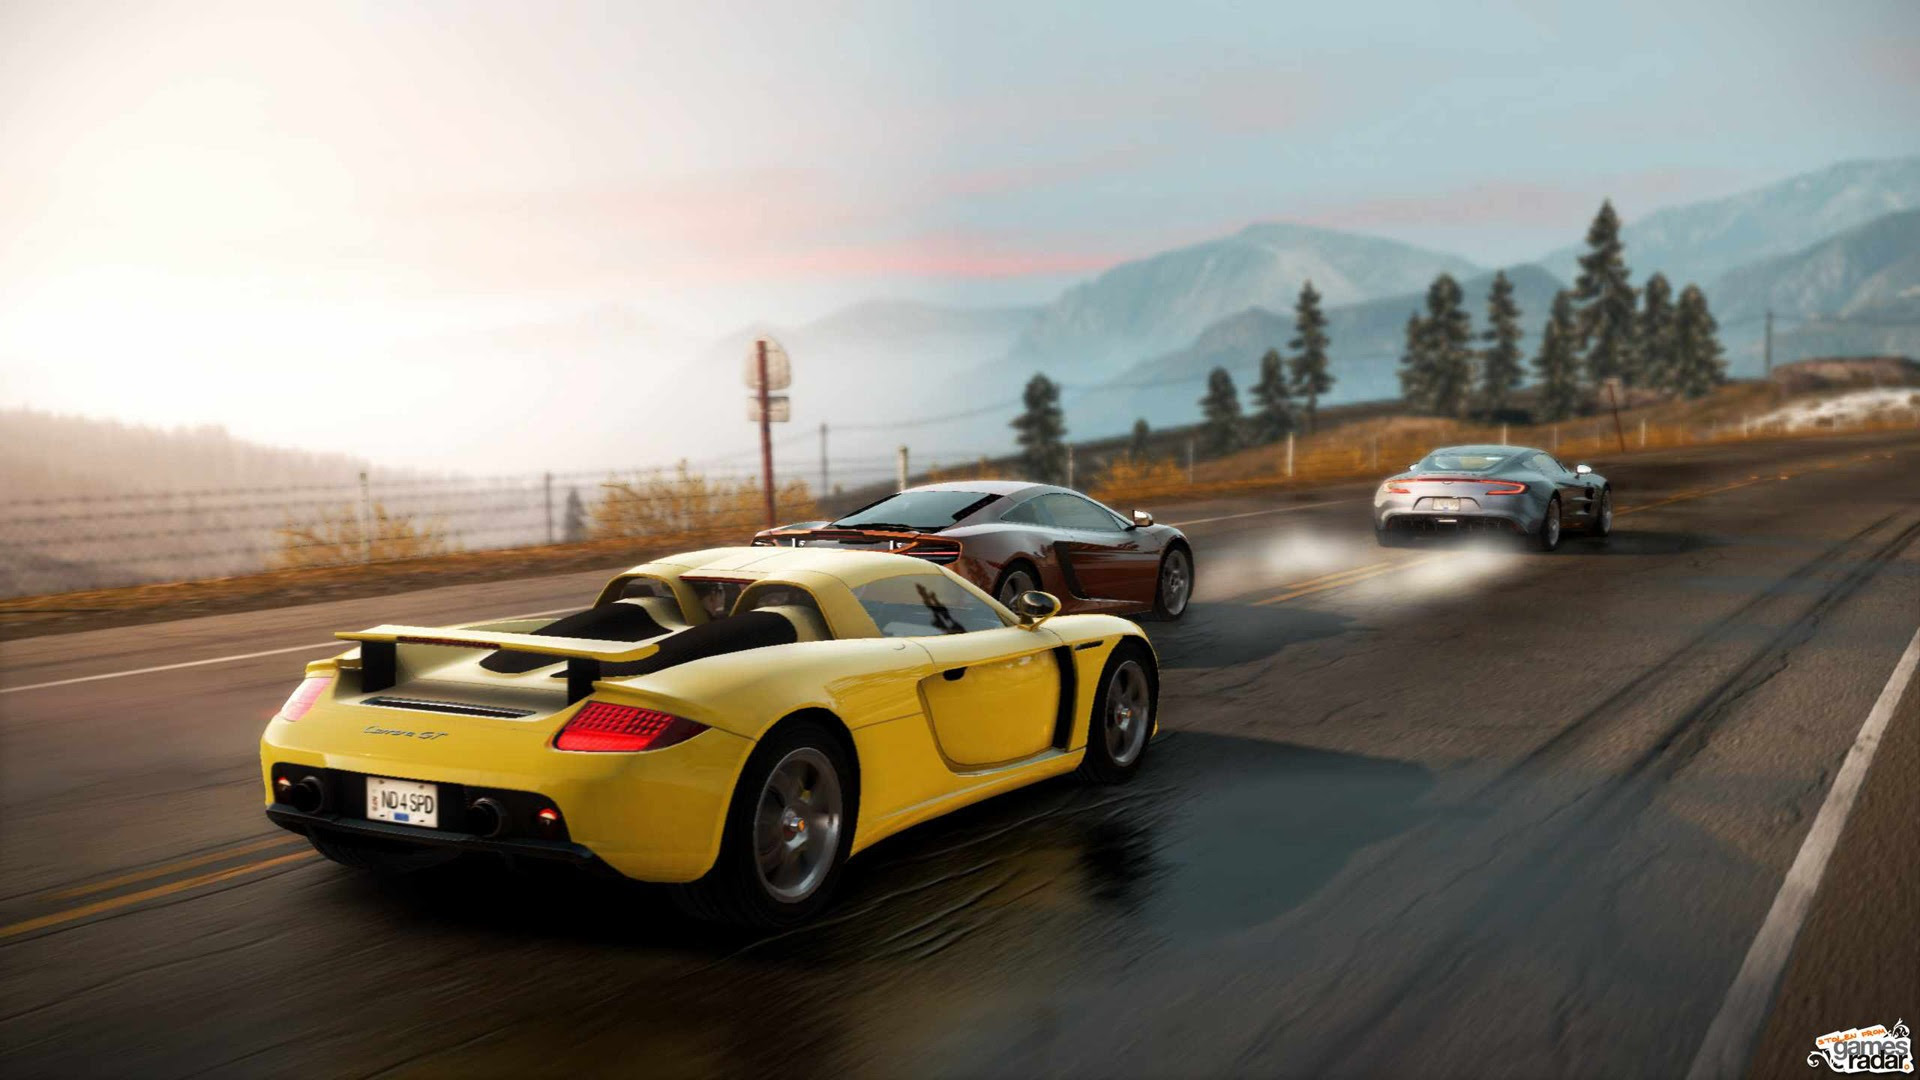 Need For Speed Hot Pursuit 6 1920x1080 Wallpaper Download